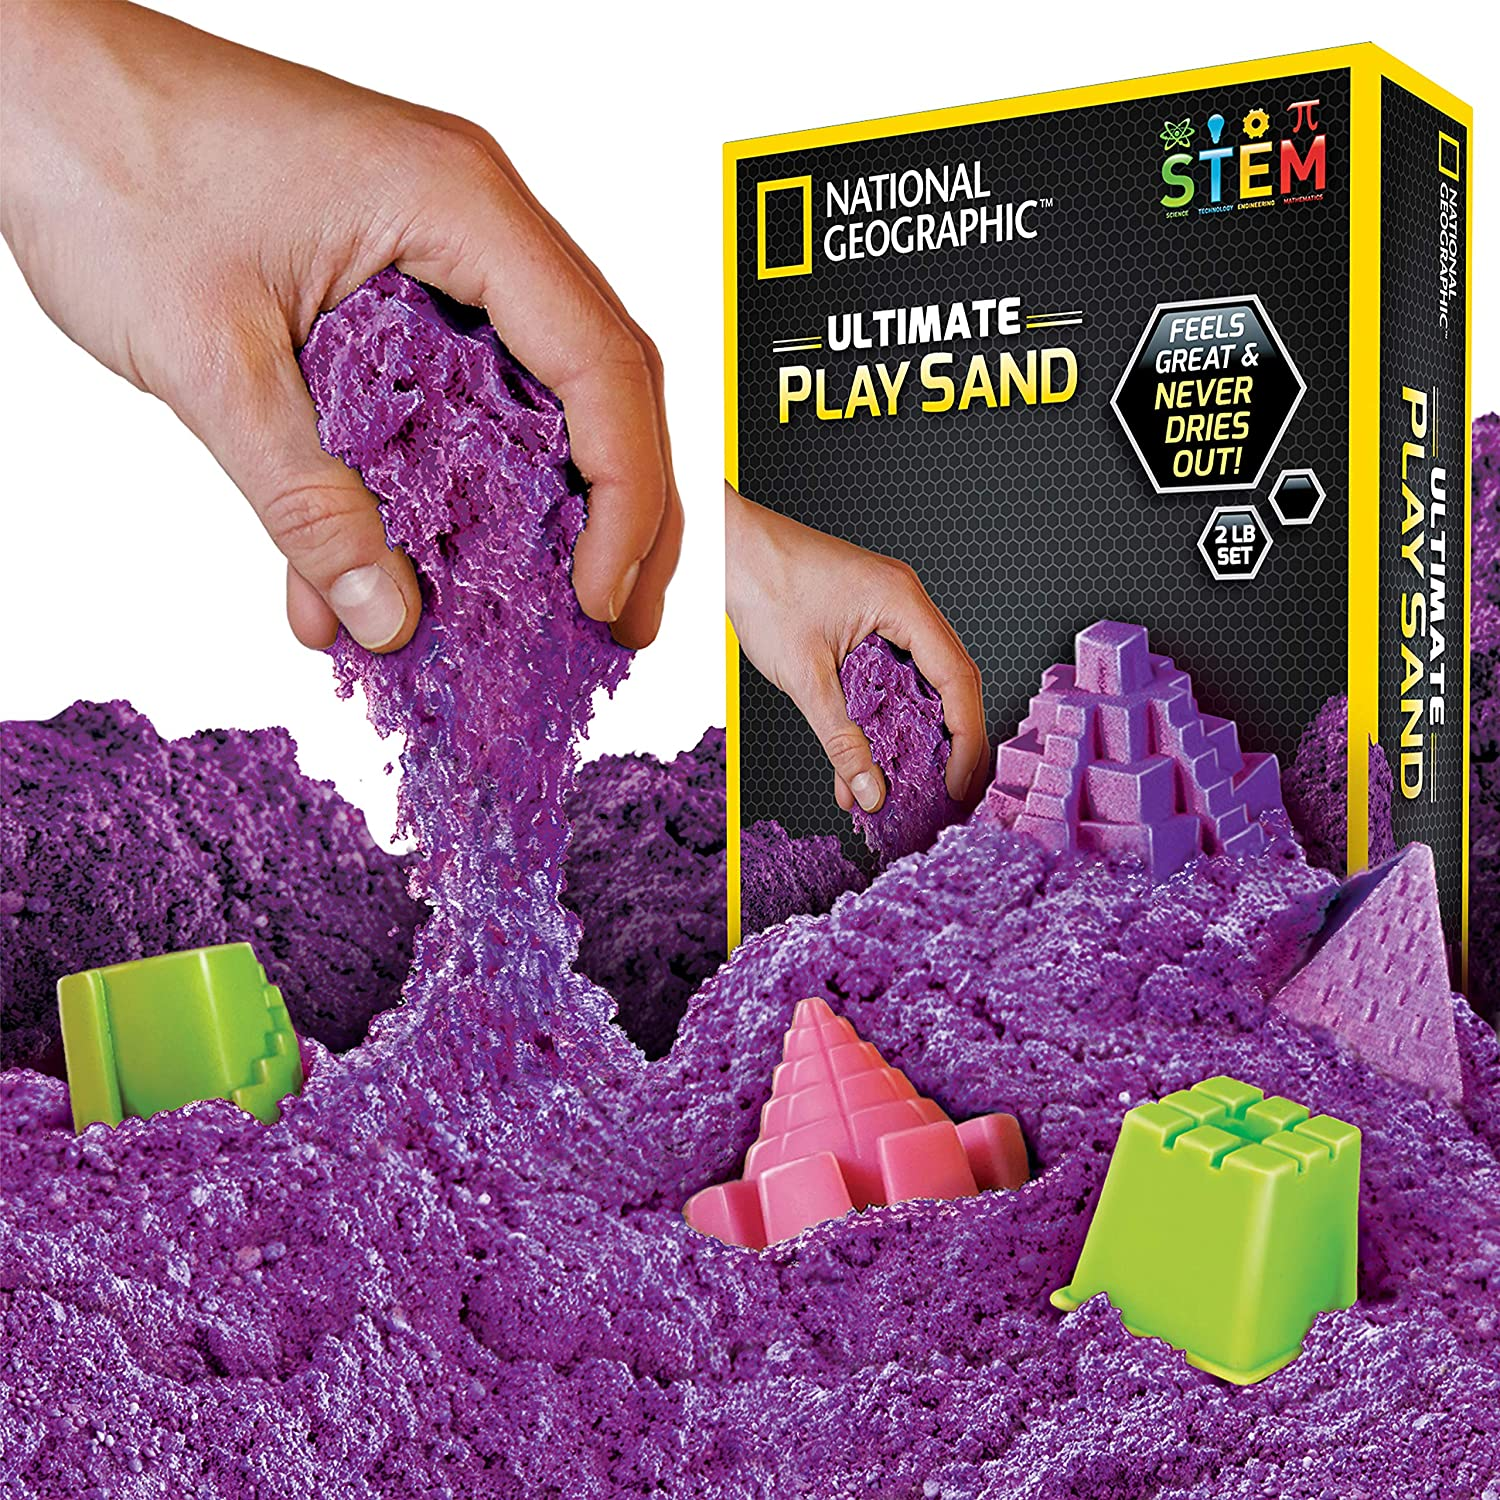 National Geographic Play Sand Blue - A Kinetic Sensory Activity 900 Grams of Sand with Castle Moulds and Tray